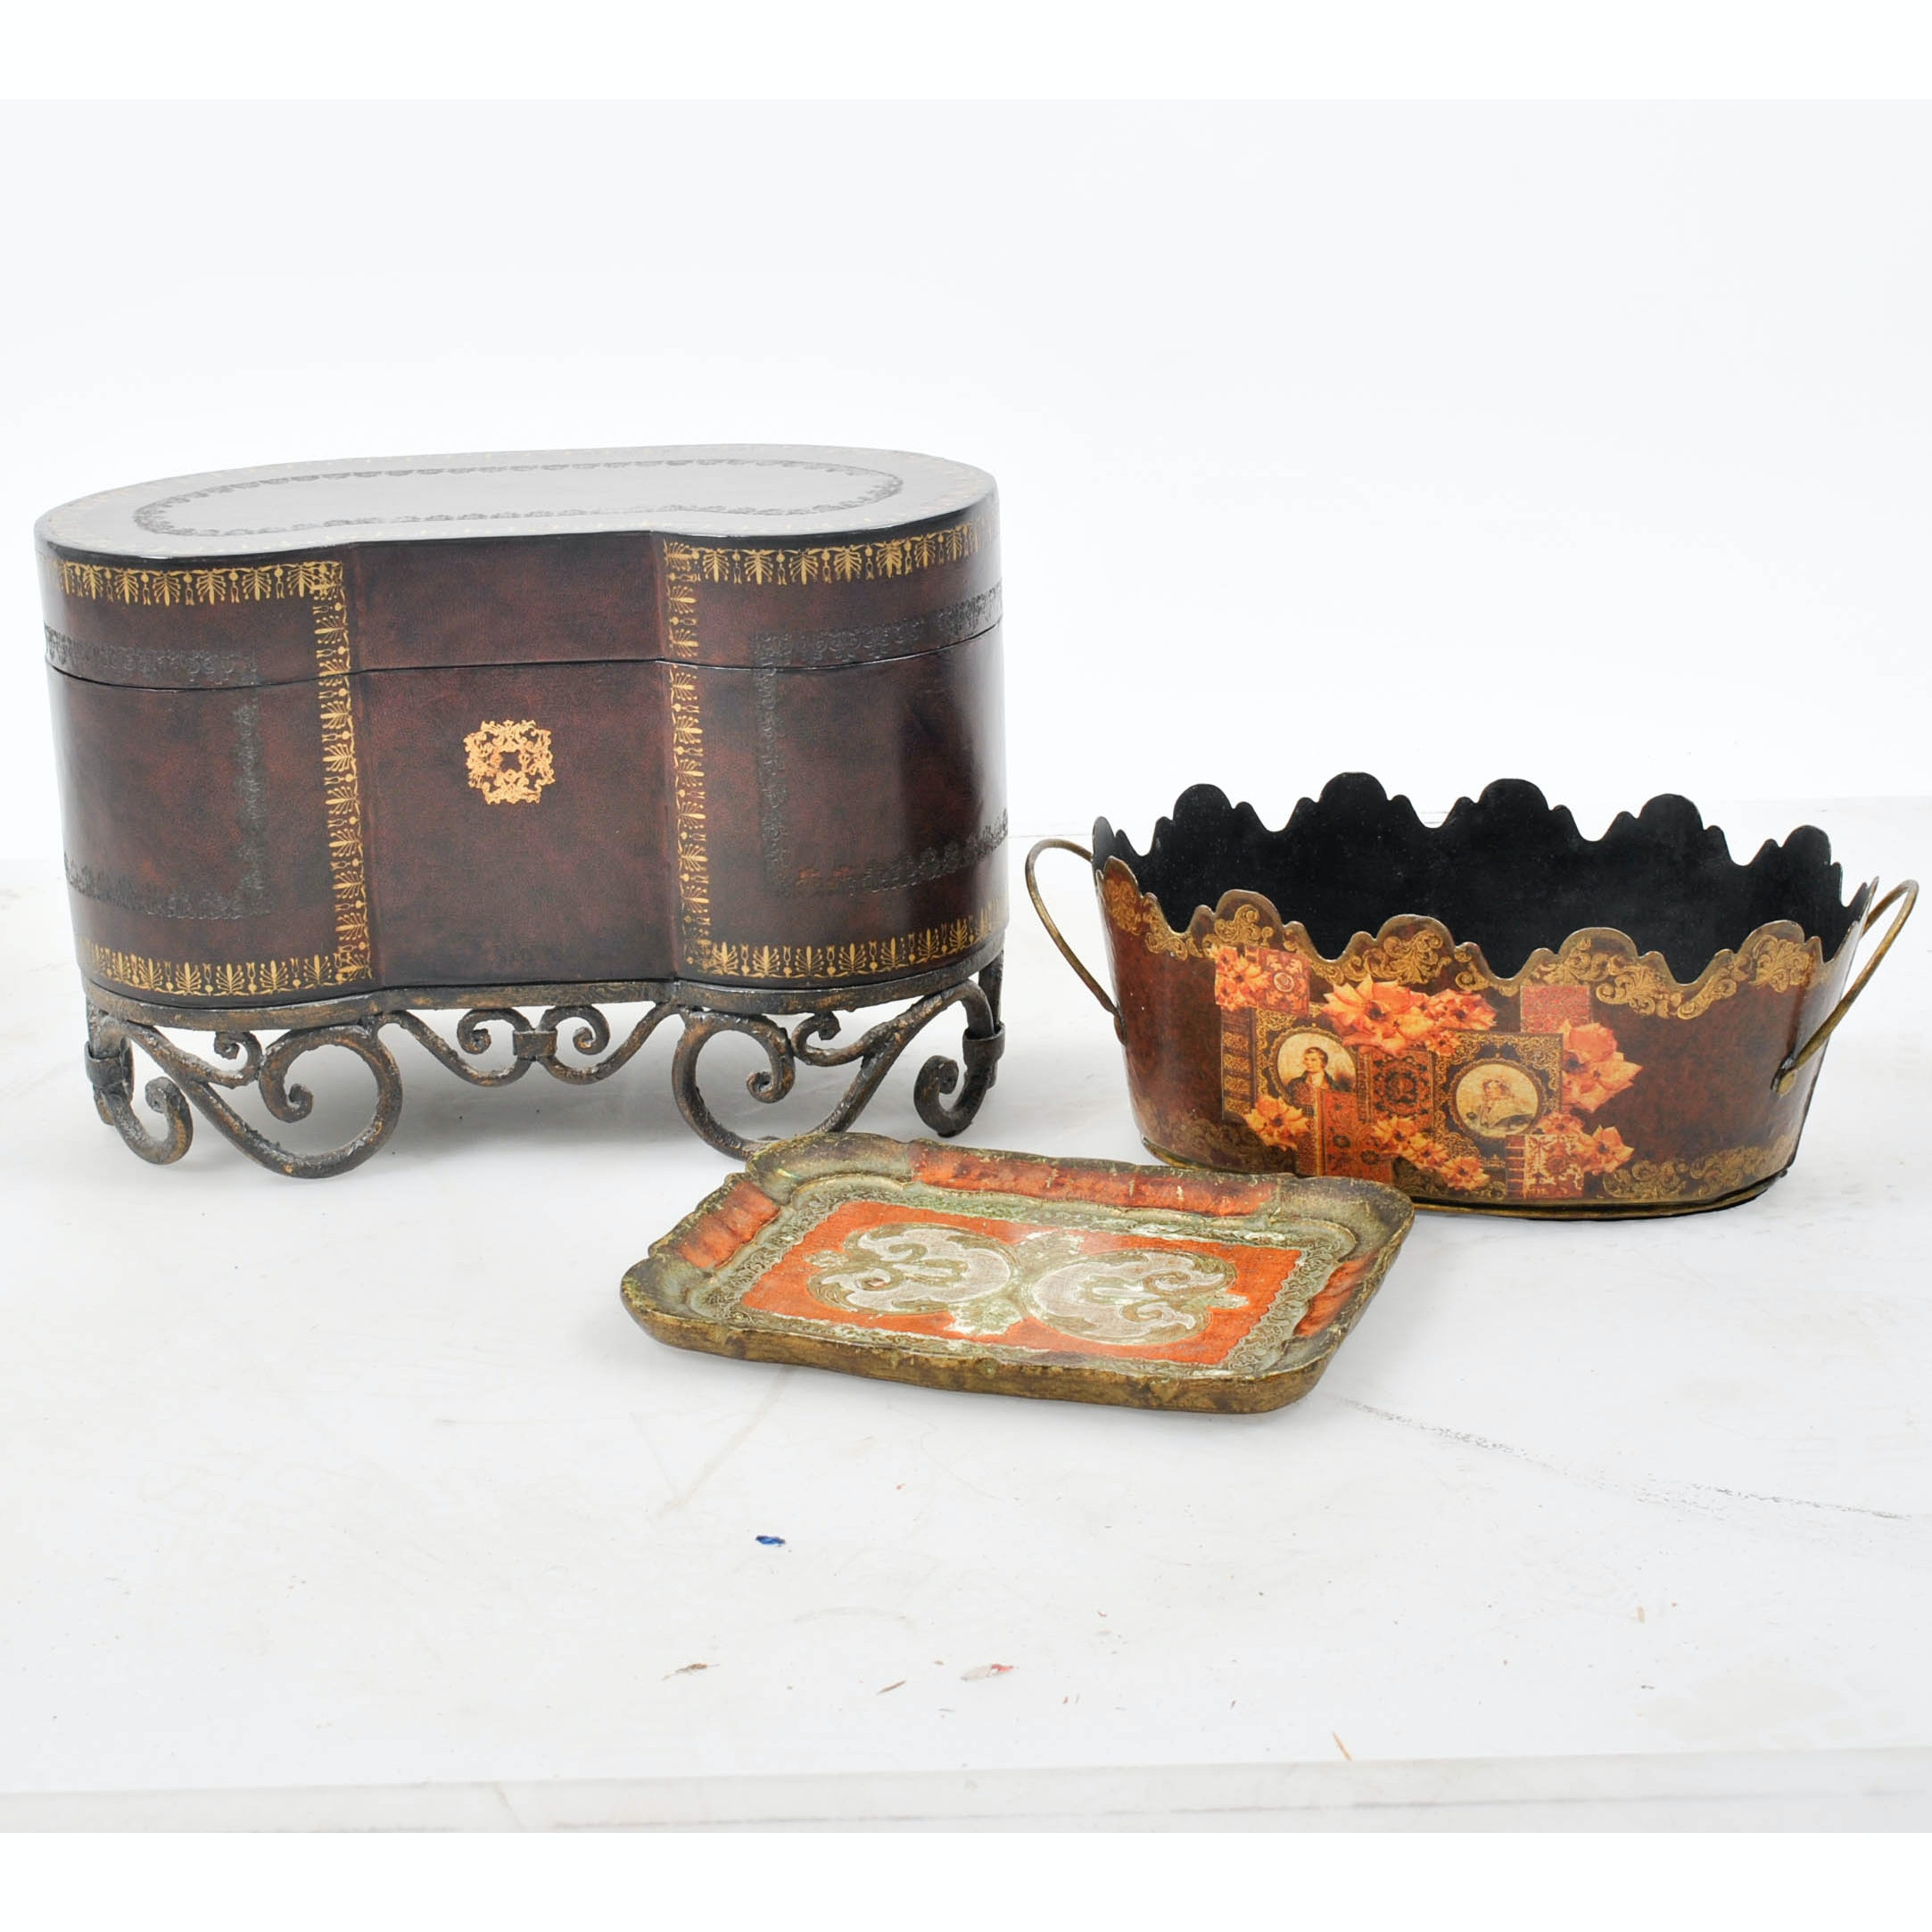 Metal Jardinière, Florentine Wooden Tray and Leather Covered Box